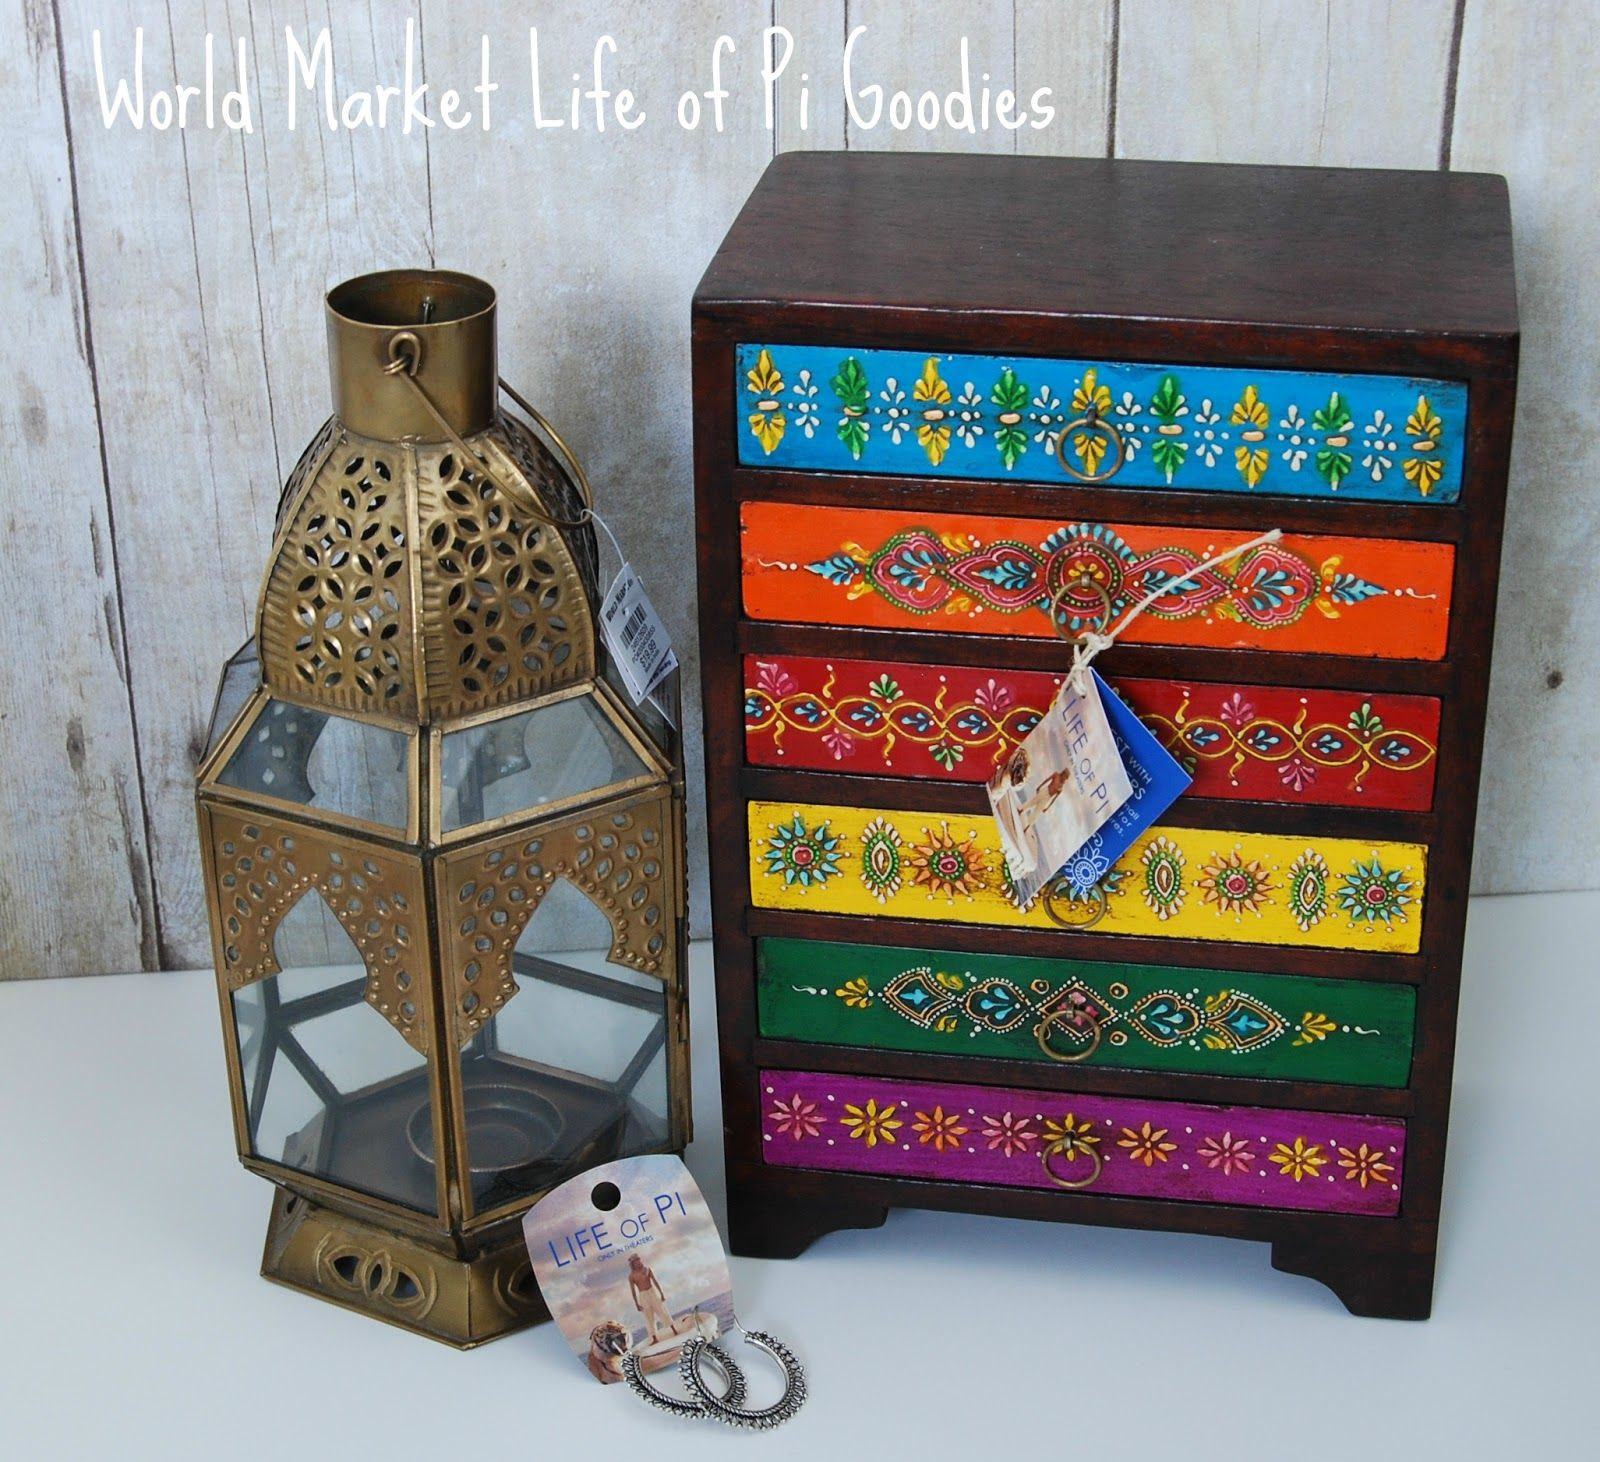 World Market Jewelry Box Fair Worldmarketlifeofpipurchases 1600×1462  Kdeb  Pinterest Design Ideas